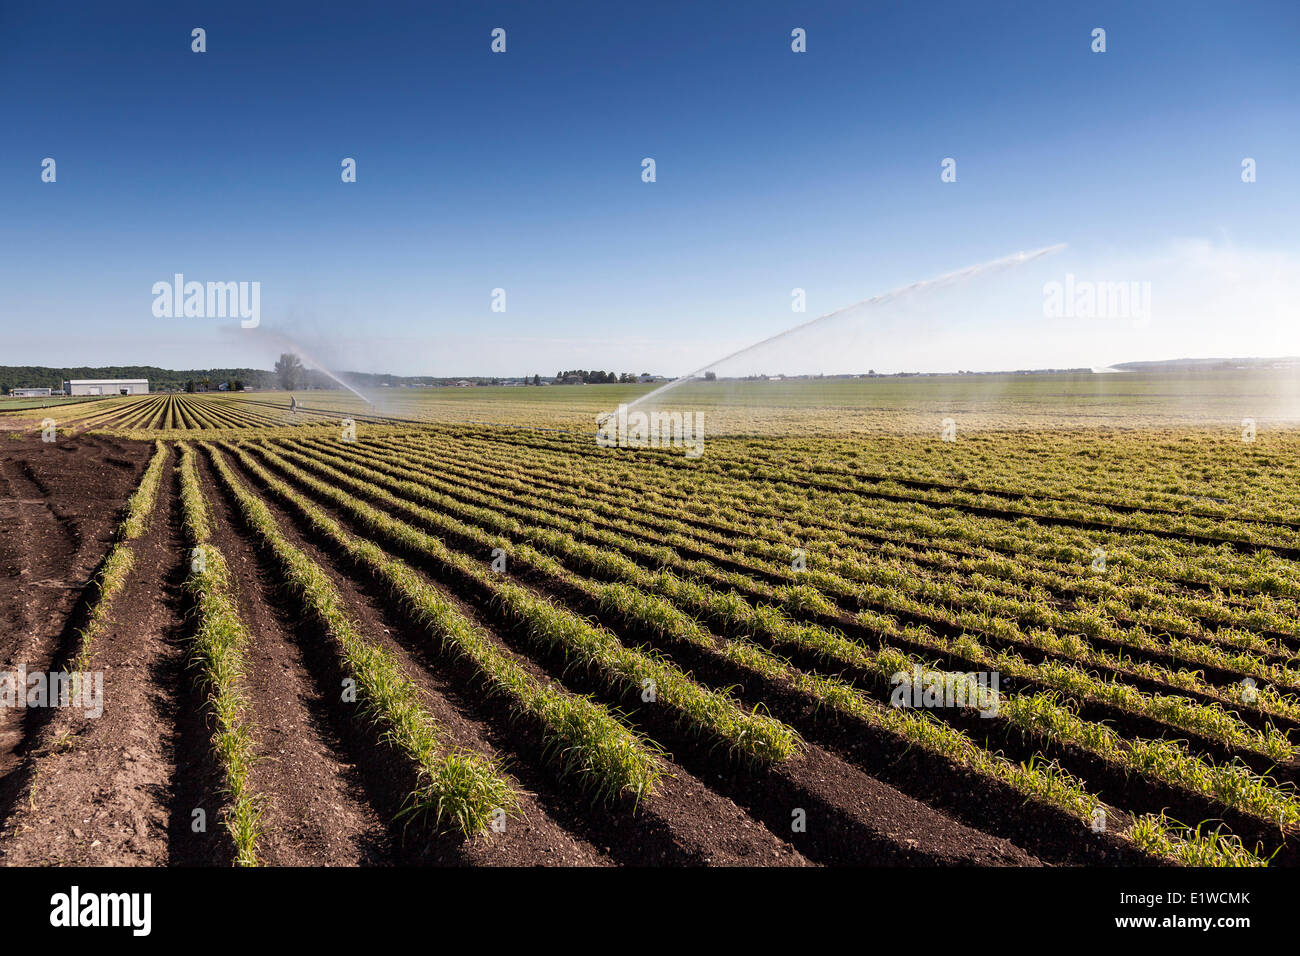 Watering the crops in a field in the Holland Marsh of Bradford West Gwillimbury, Ontario - Stock Image